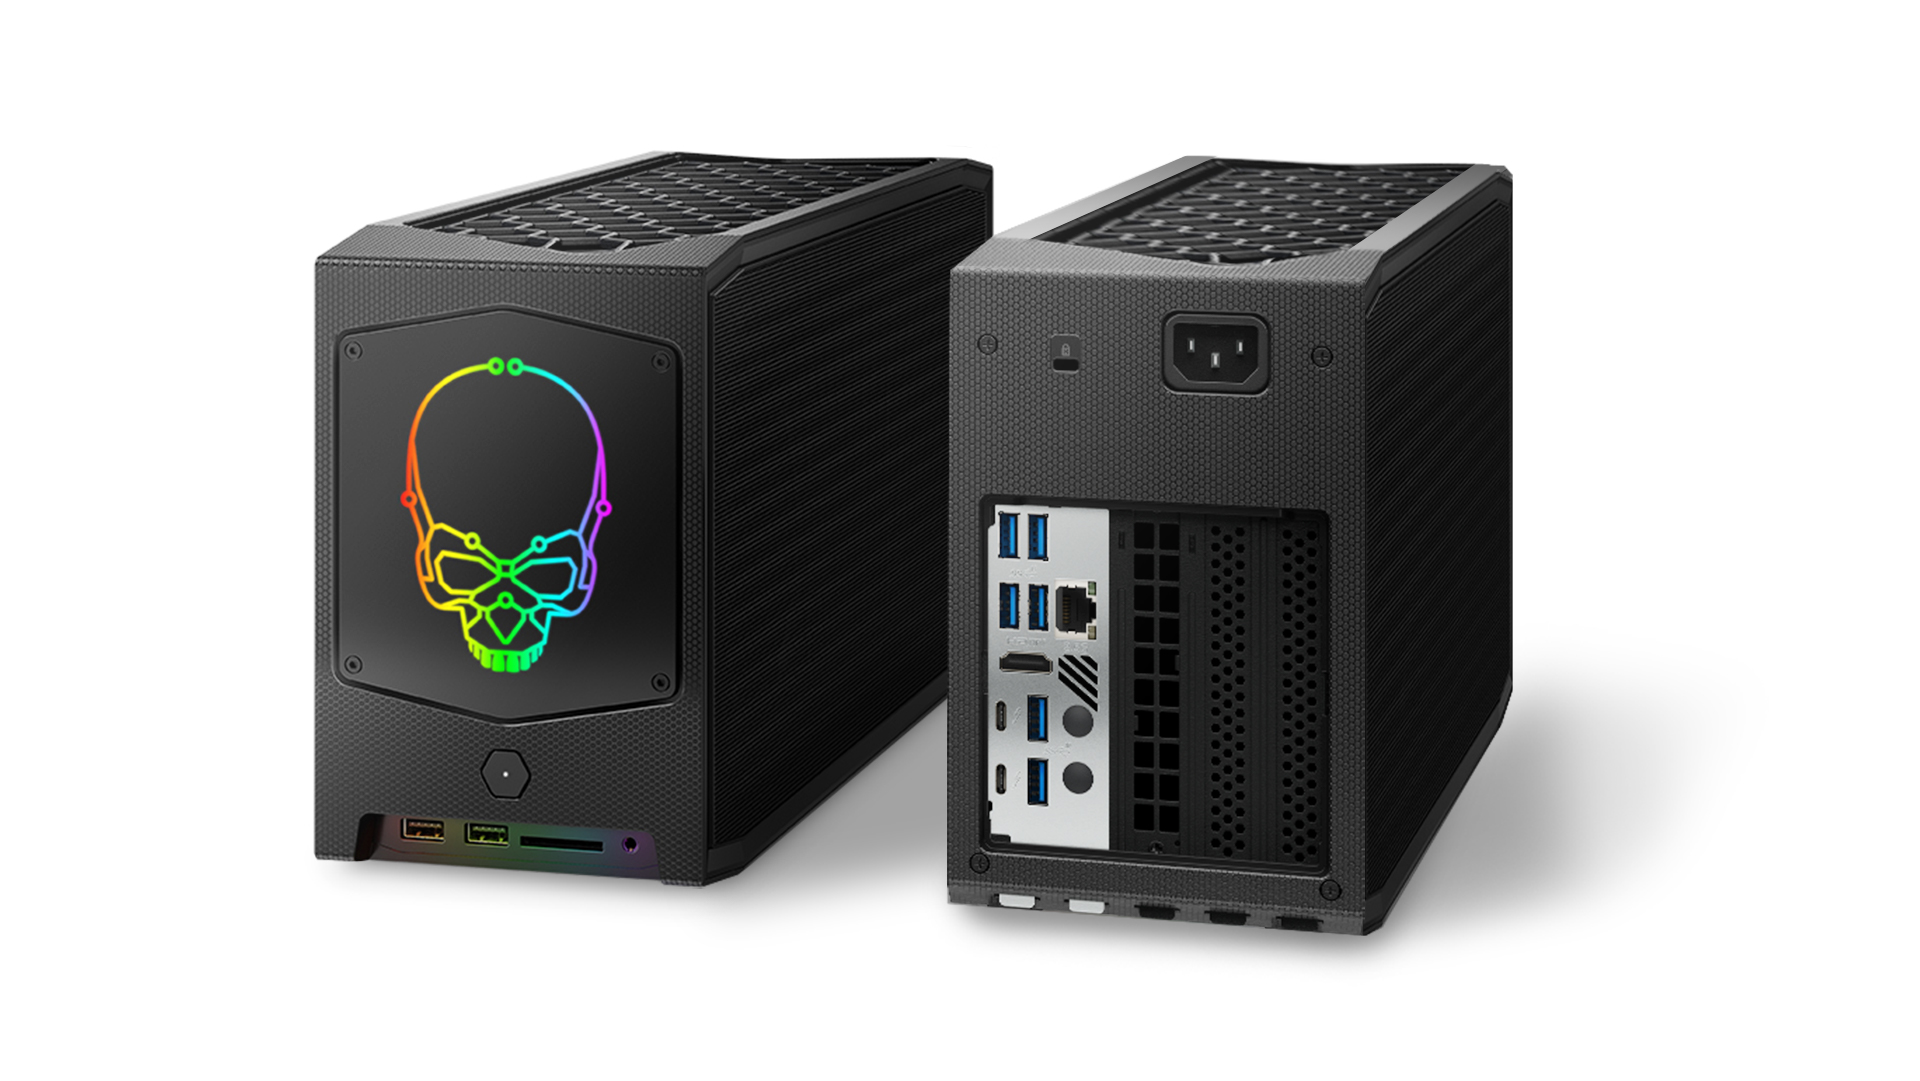 NUC 11 Extreme Kit front and back